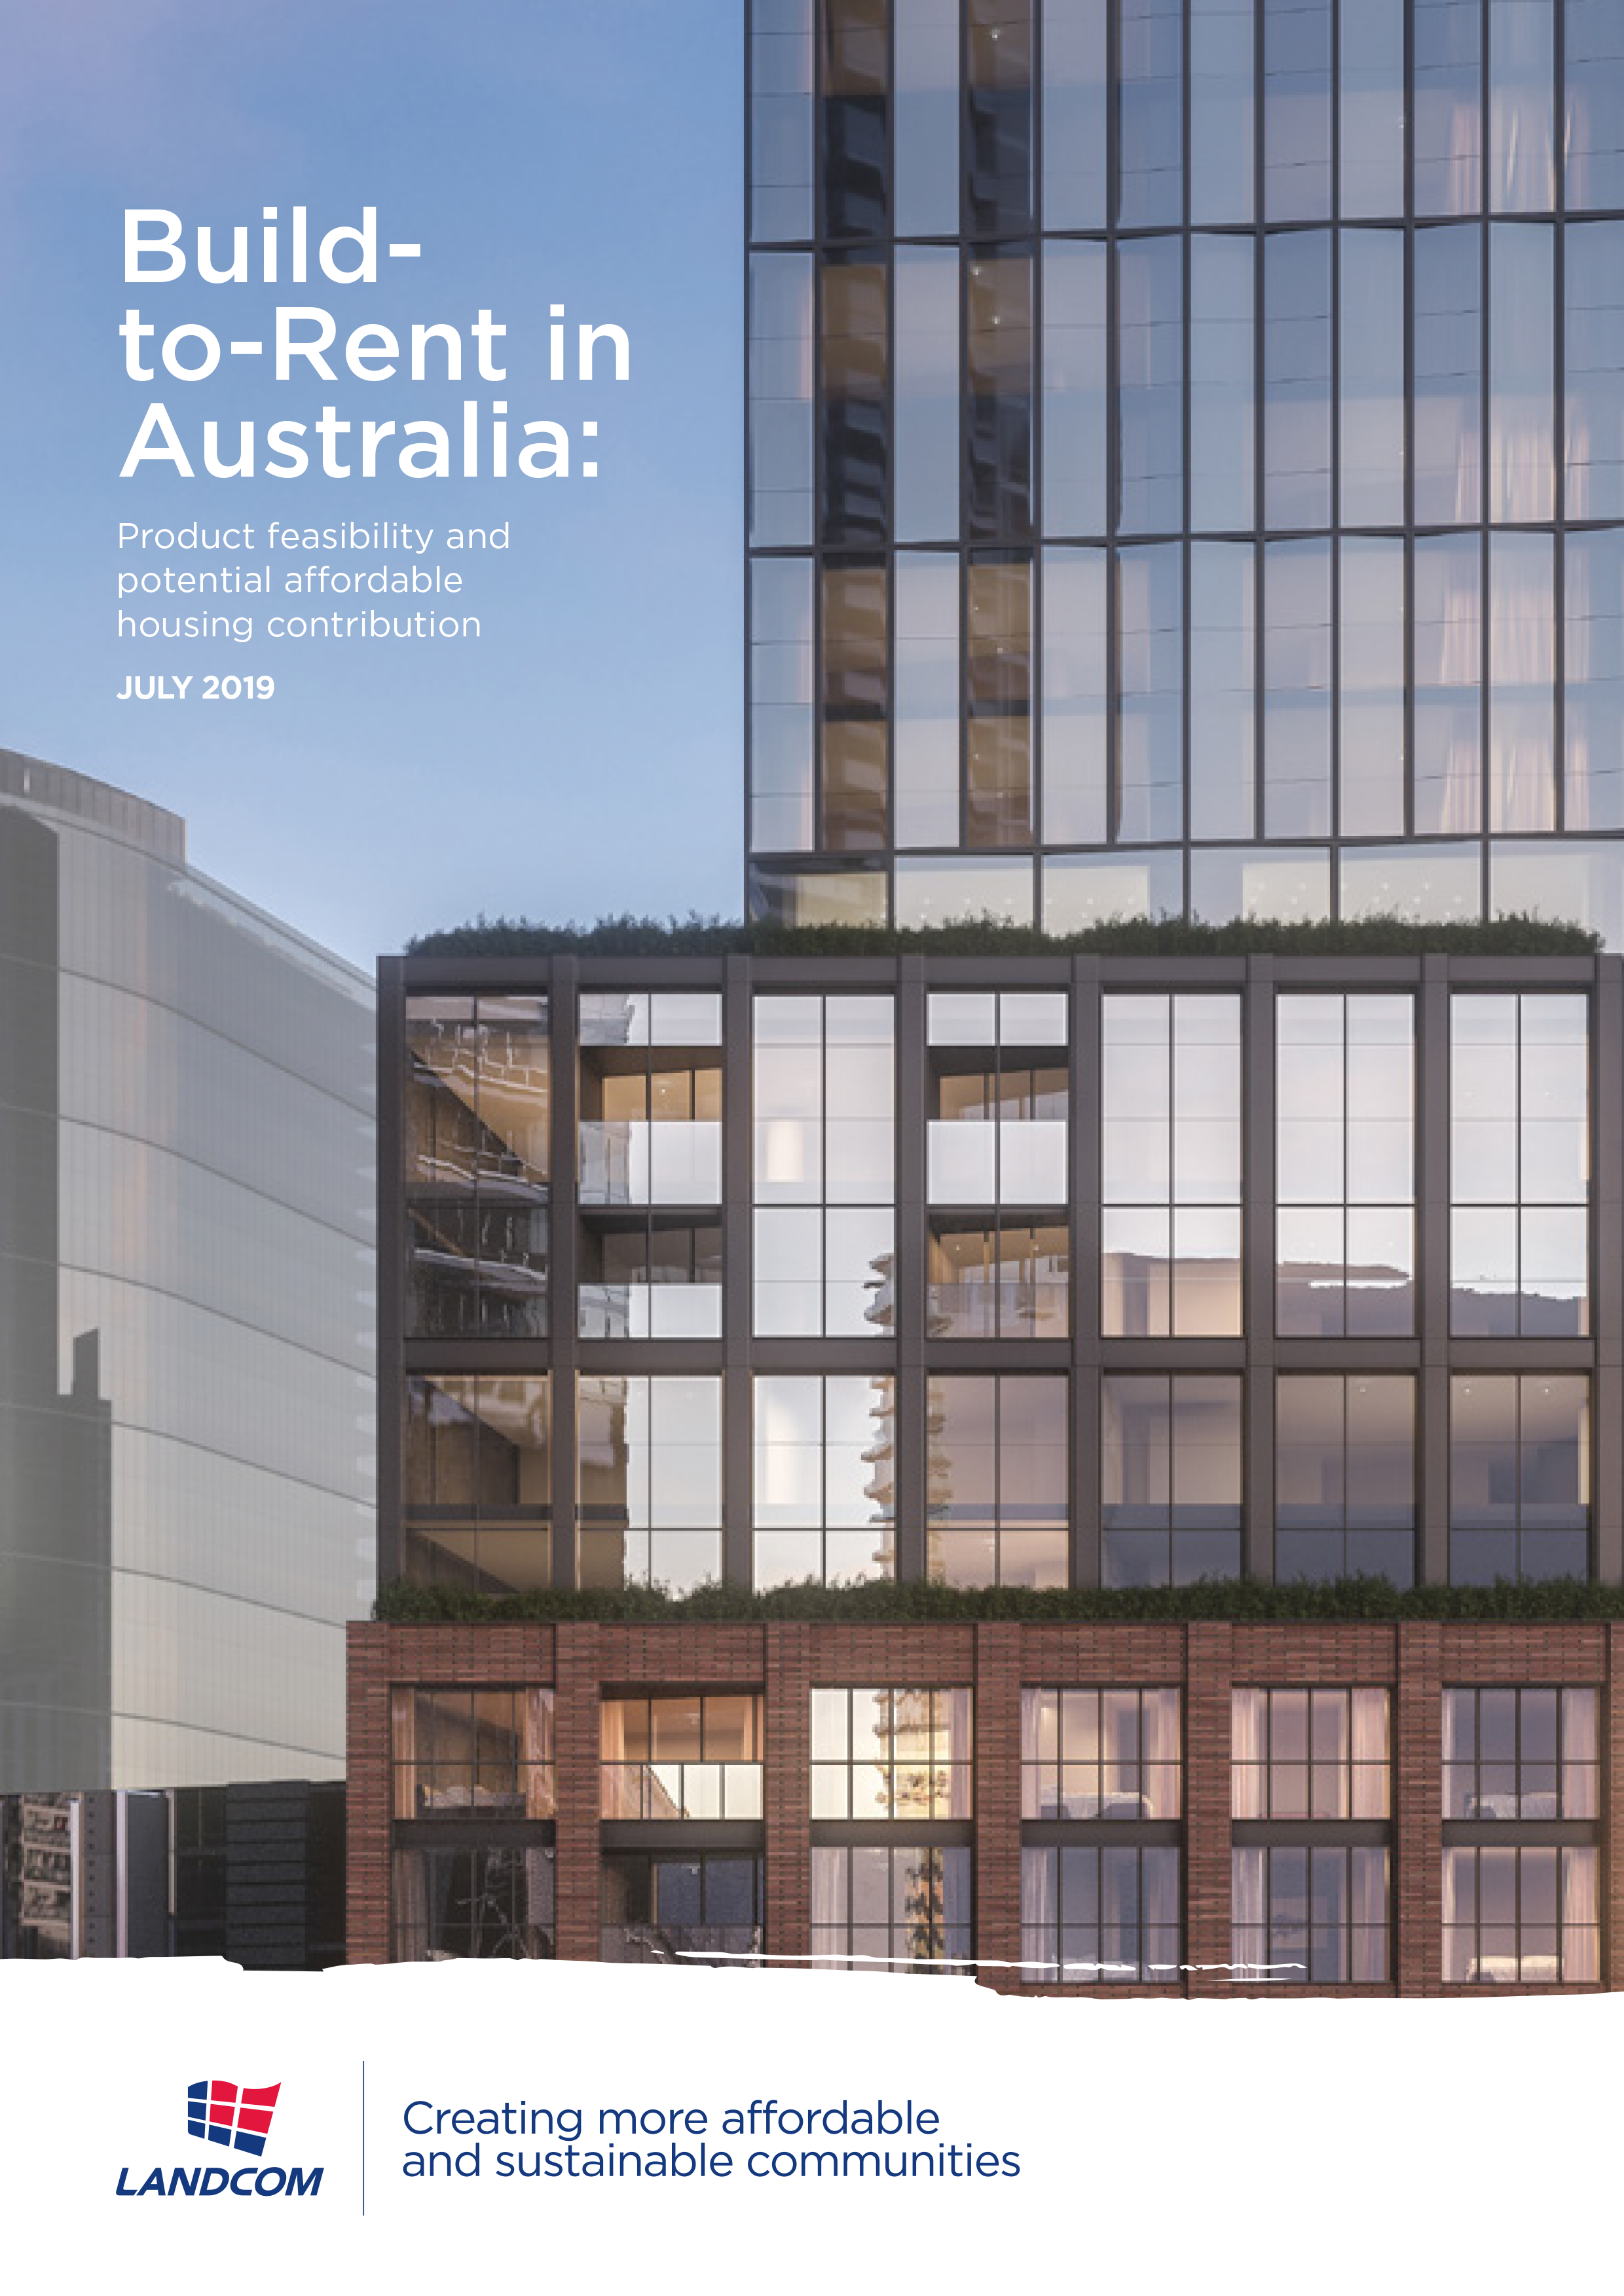 How can an Australian 'build to rent' product contribute to urban